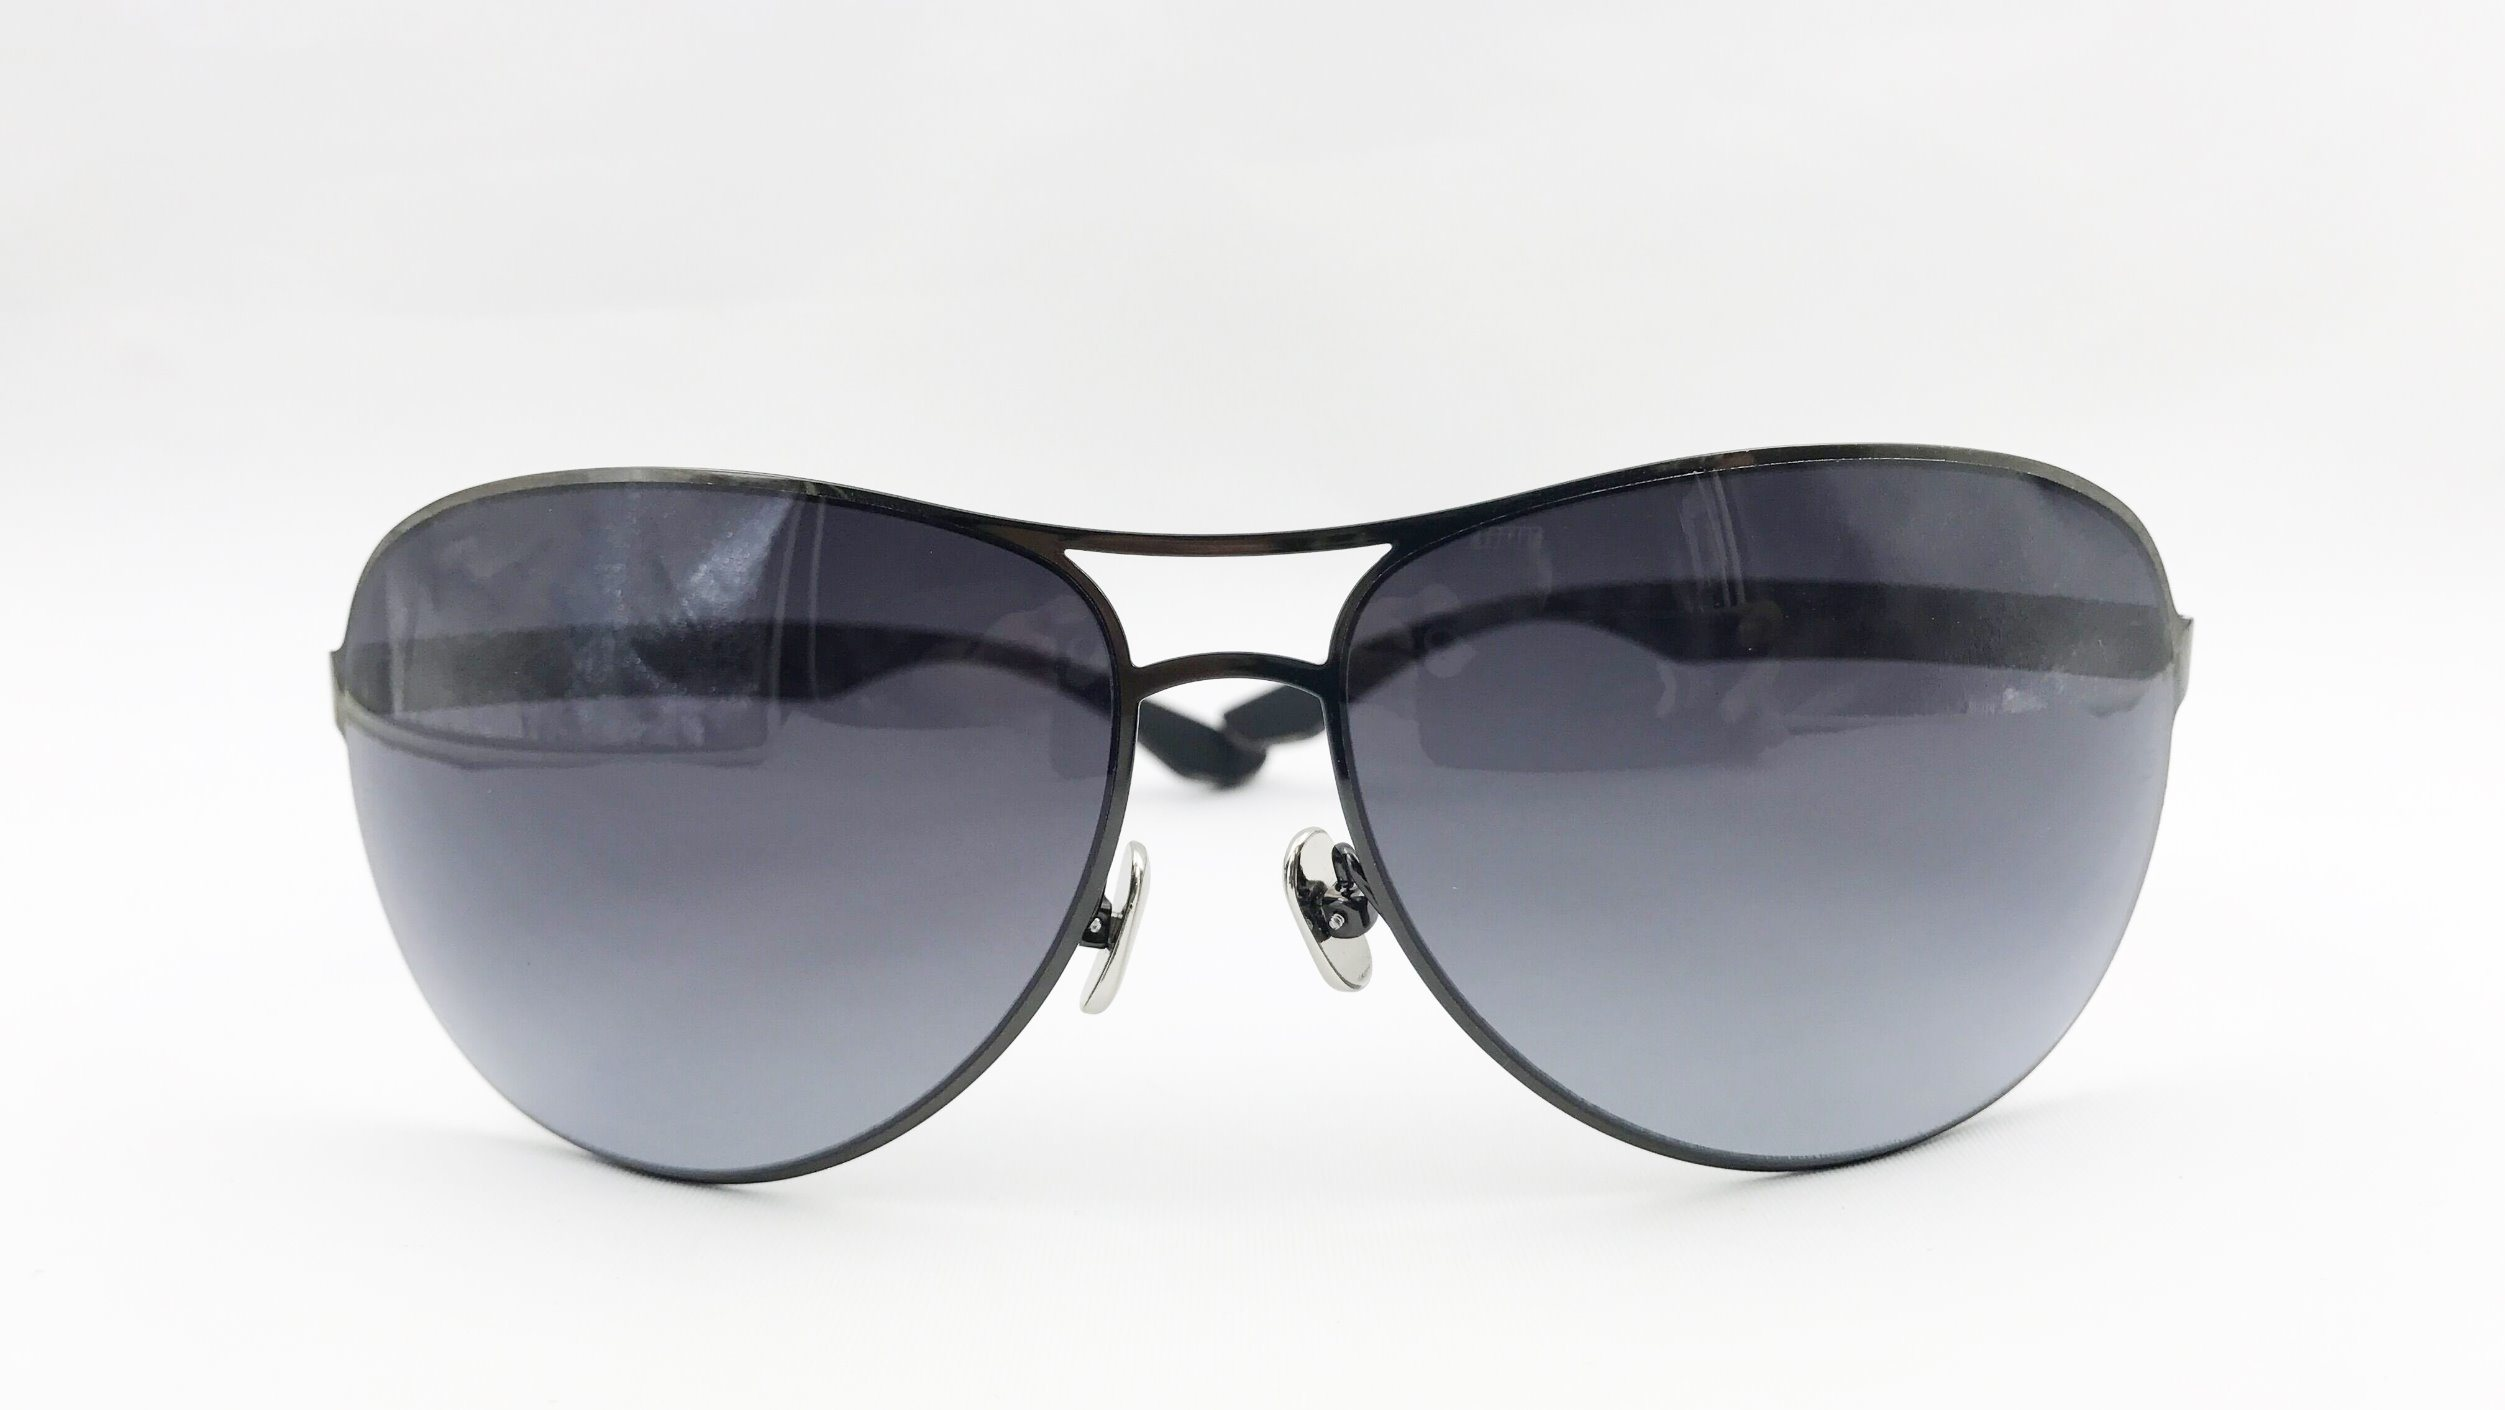 800basse Good Selling Metal Sunglasses for Man, Police Style.